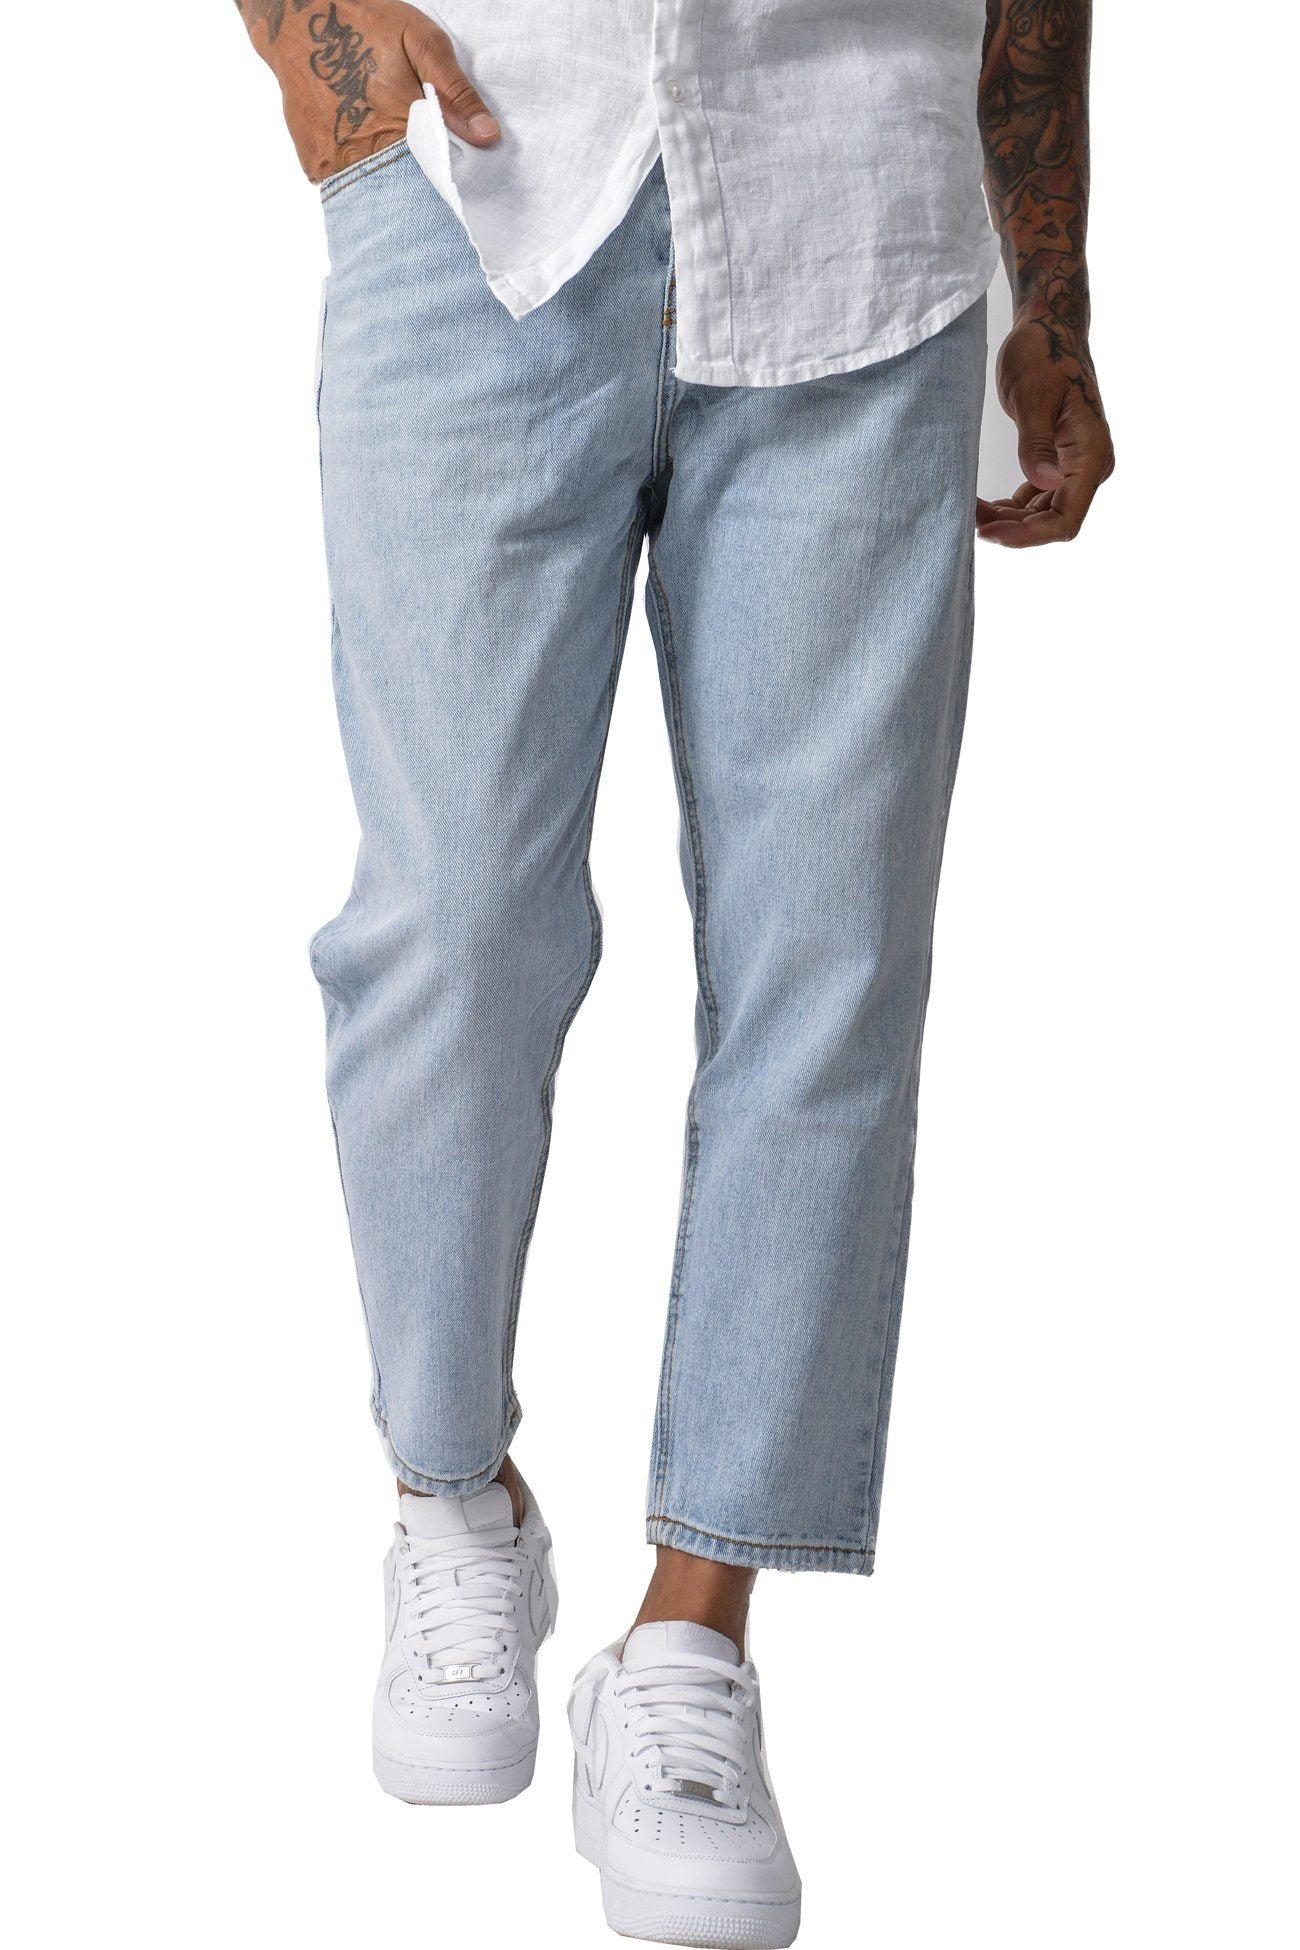 Dallas Basic boyfriend Jeans Light Blue - PEGADOR - Dominate the Hype